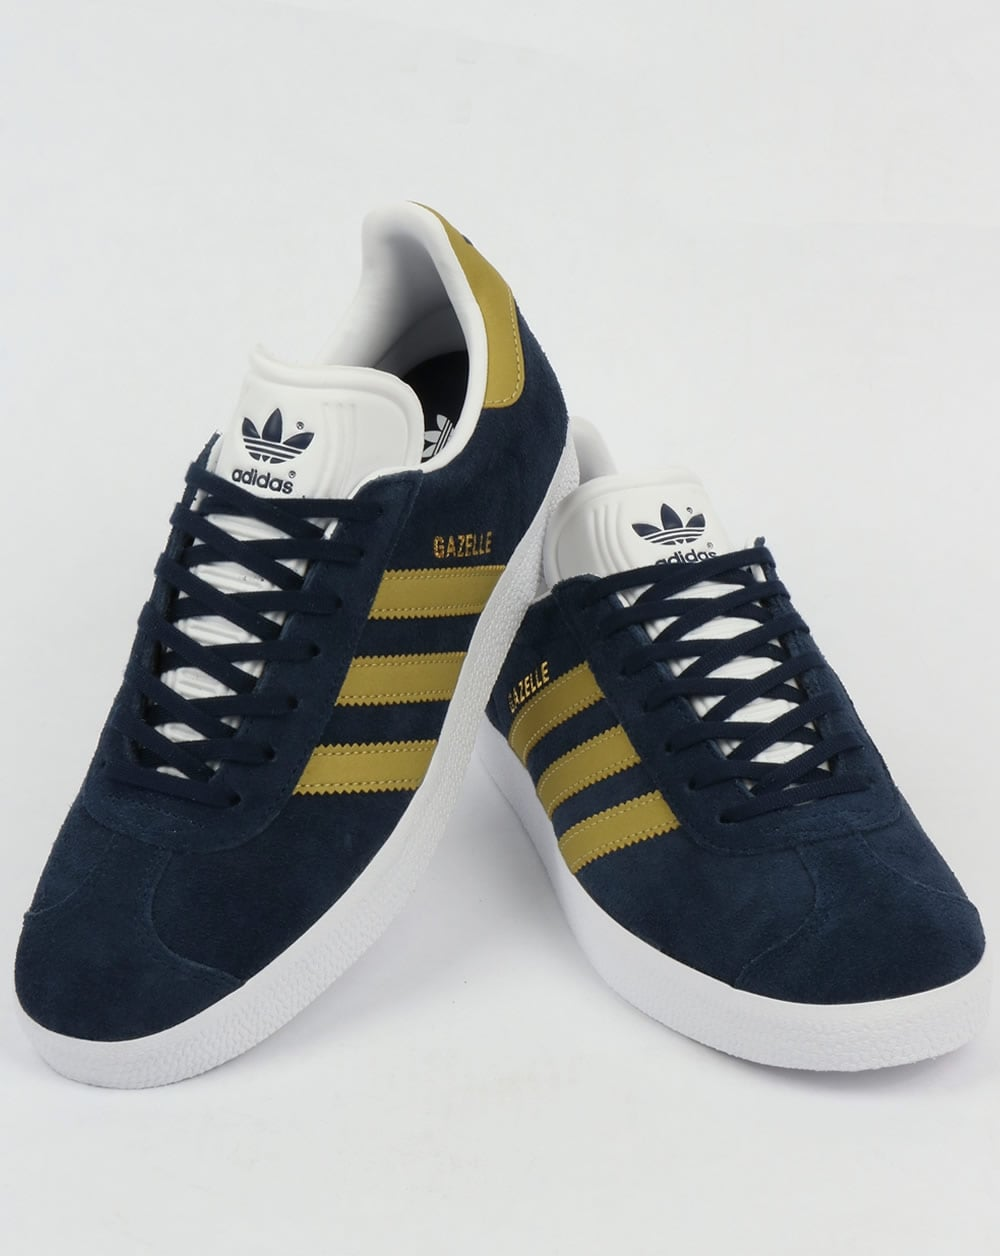 Adidas Gazelle Trainers NavyGold